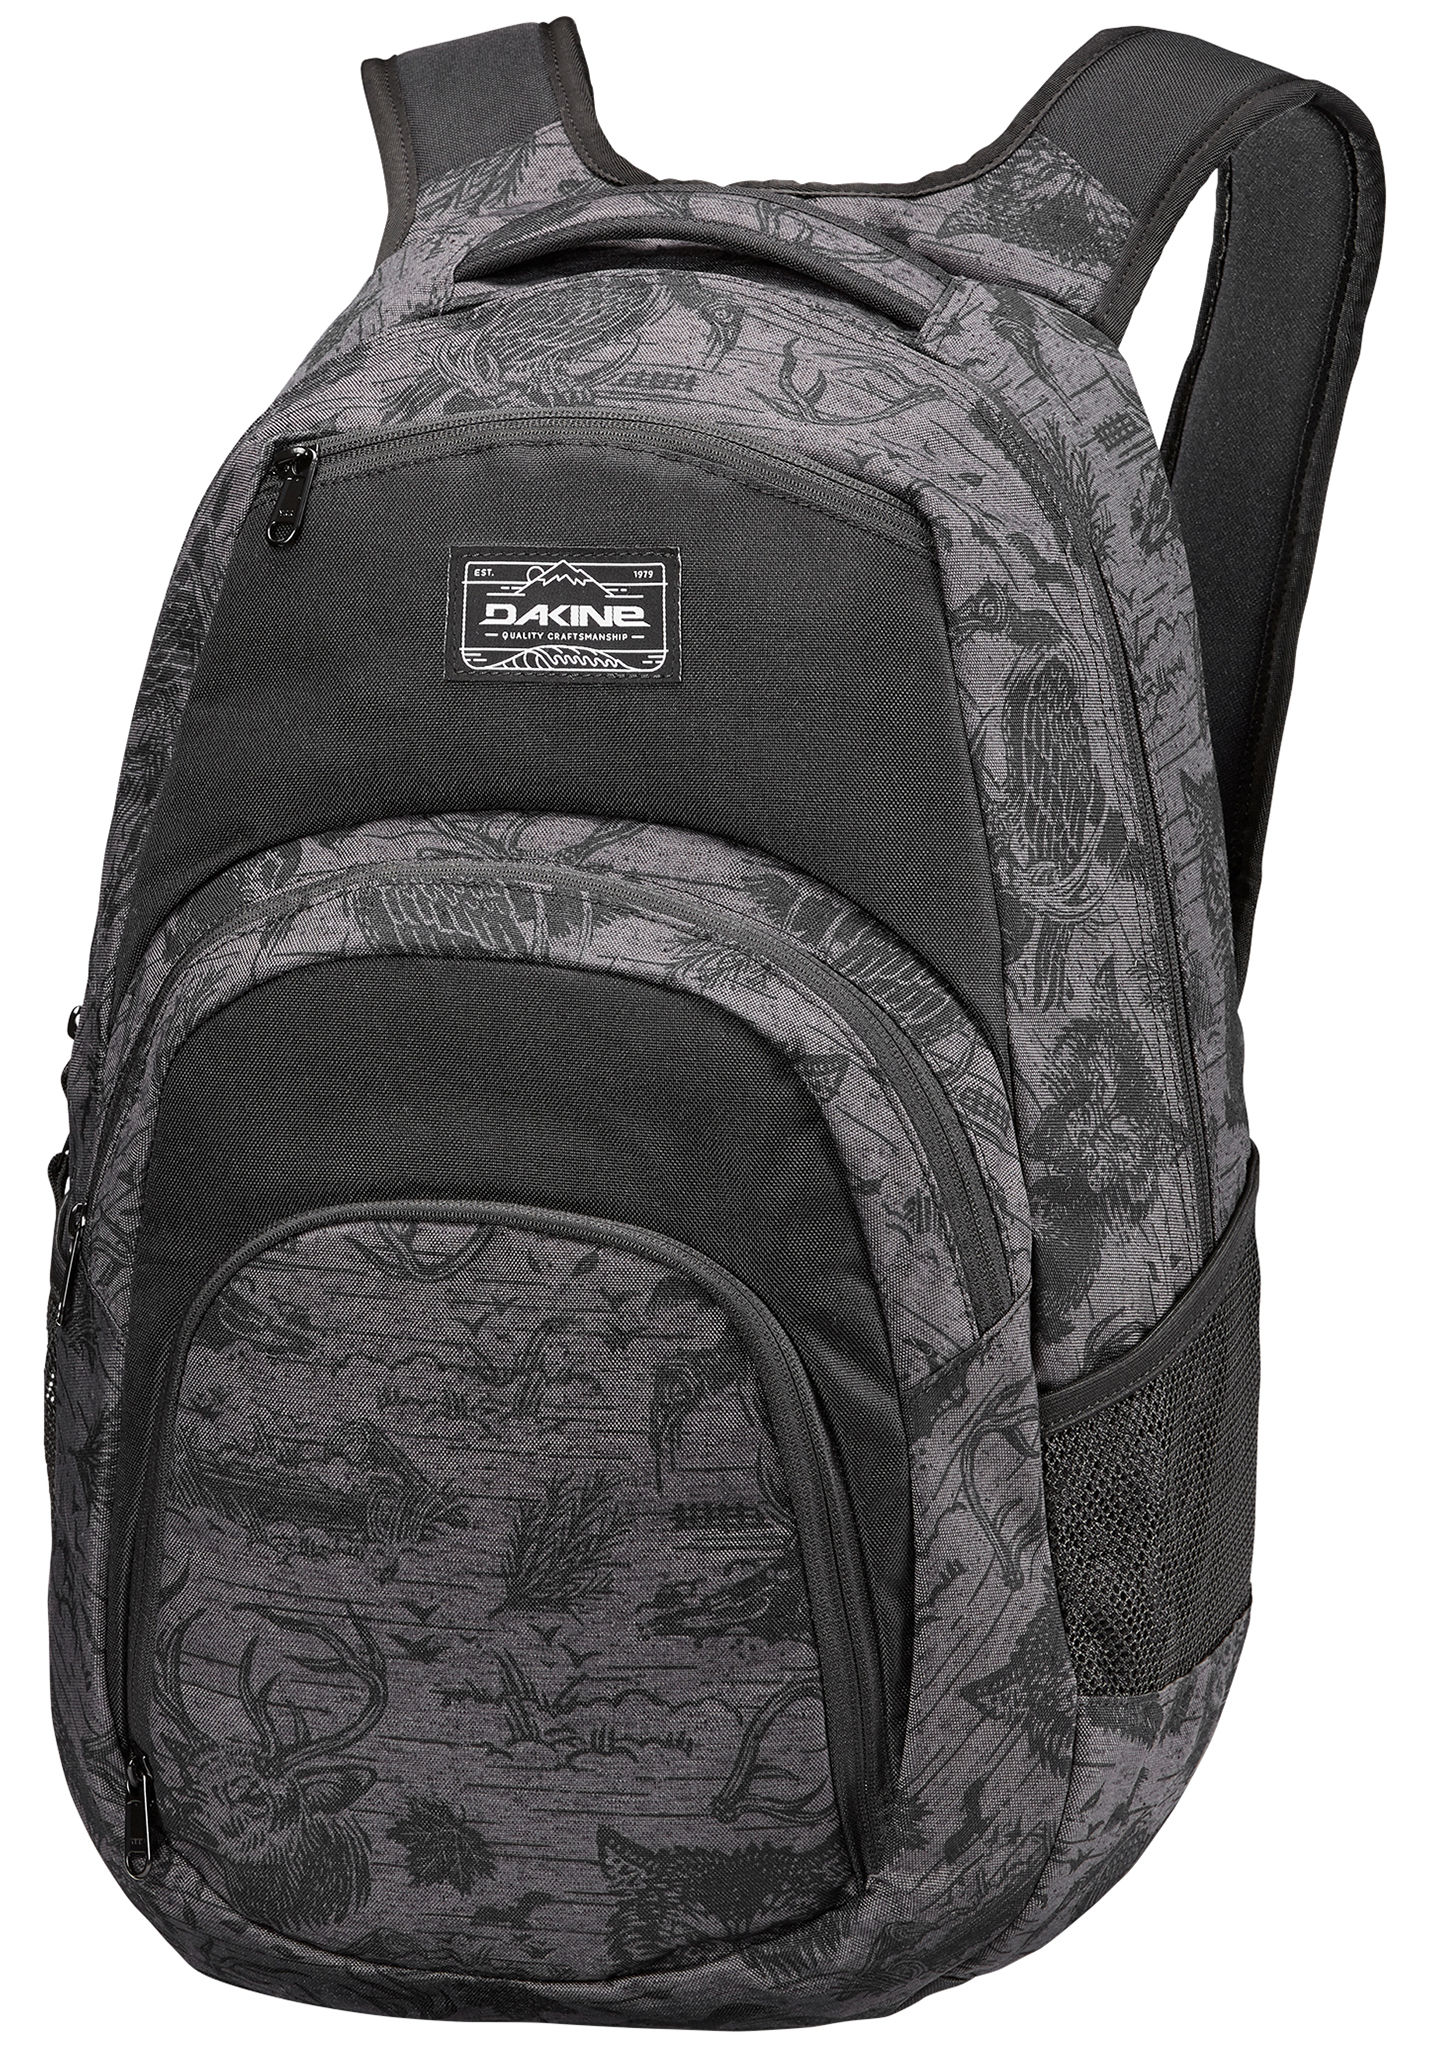 dakine heli pro 18l with Dakine Backpacks Men 2878 on Dakine Leanne Pelosi Team Heli Pro Backpack 18l Womens together with SearchResults also Watch further Dakine Juliet Backpack 292 additionally Sac A Dos Dakine Womens S Heli Pro 18l Id231285.